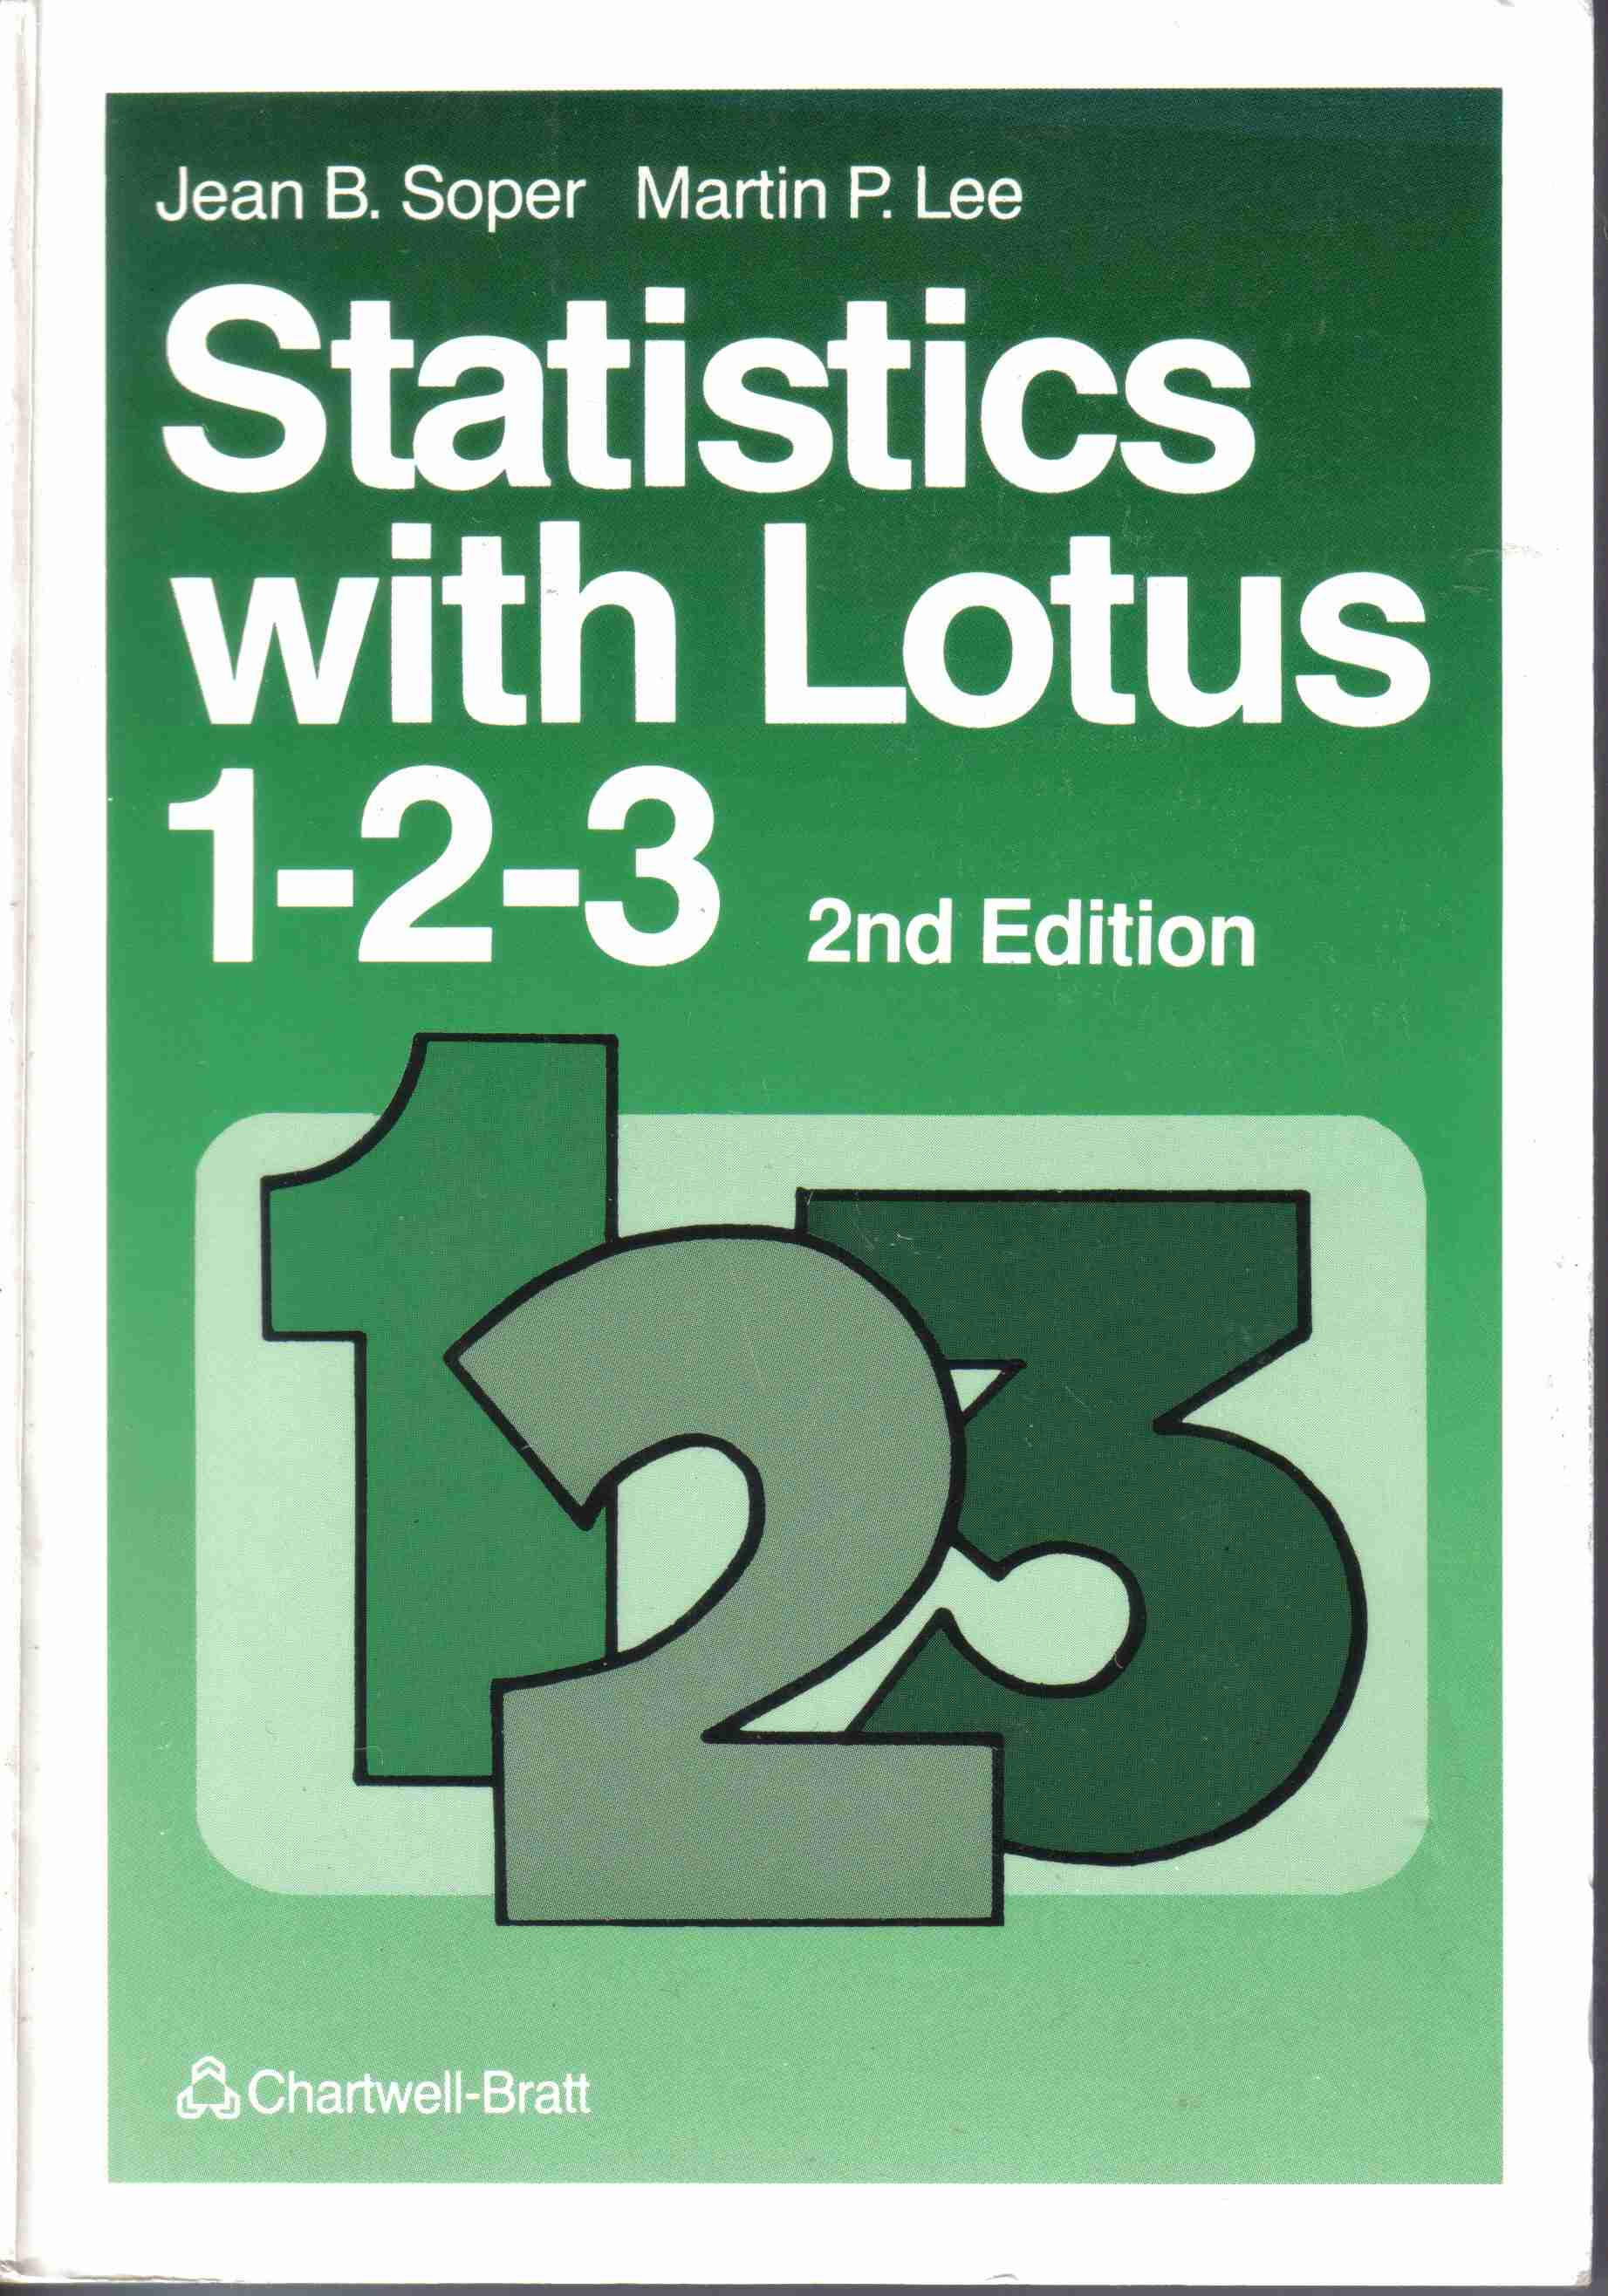 My book entitled Statistics with Lotus 1-2-3